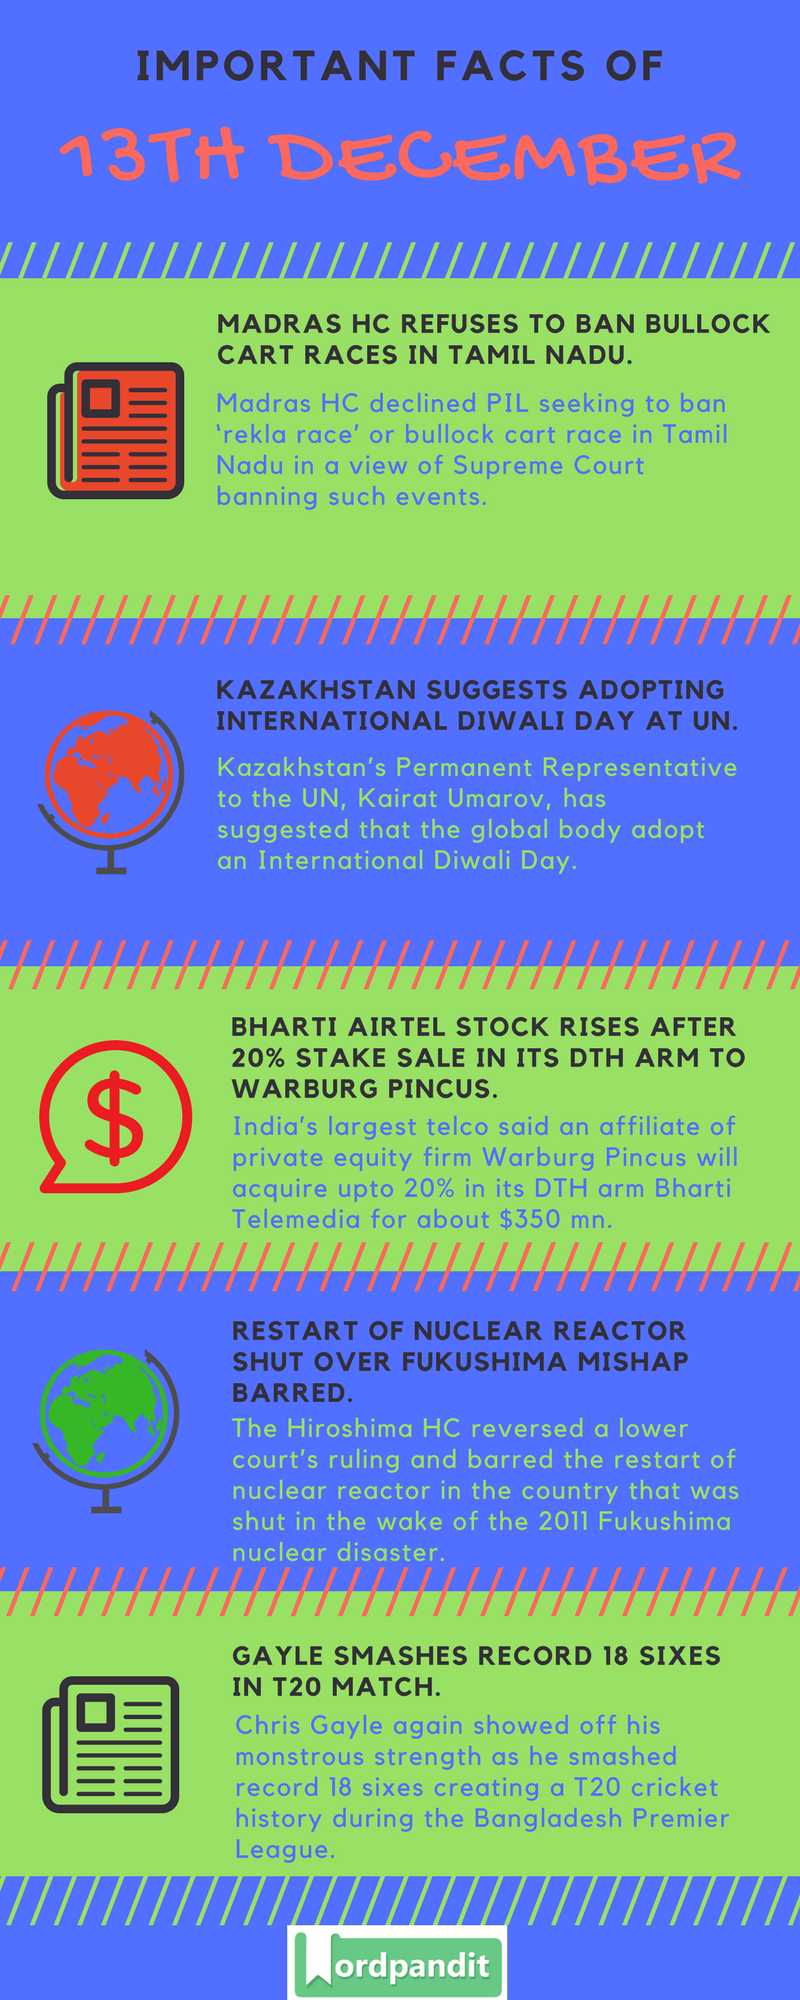 Daily-Current-Affairs-13-december-2017-Current-Affairs-Quiz-december-13-2017-Current-Affairs-Infographic